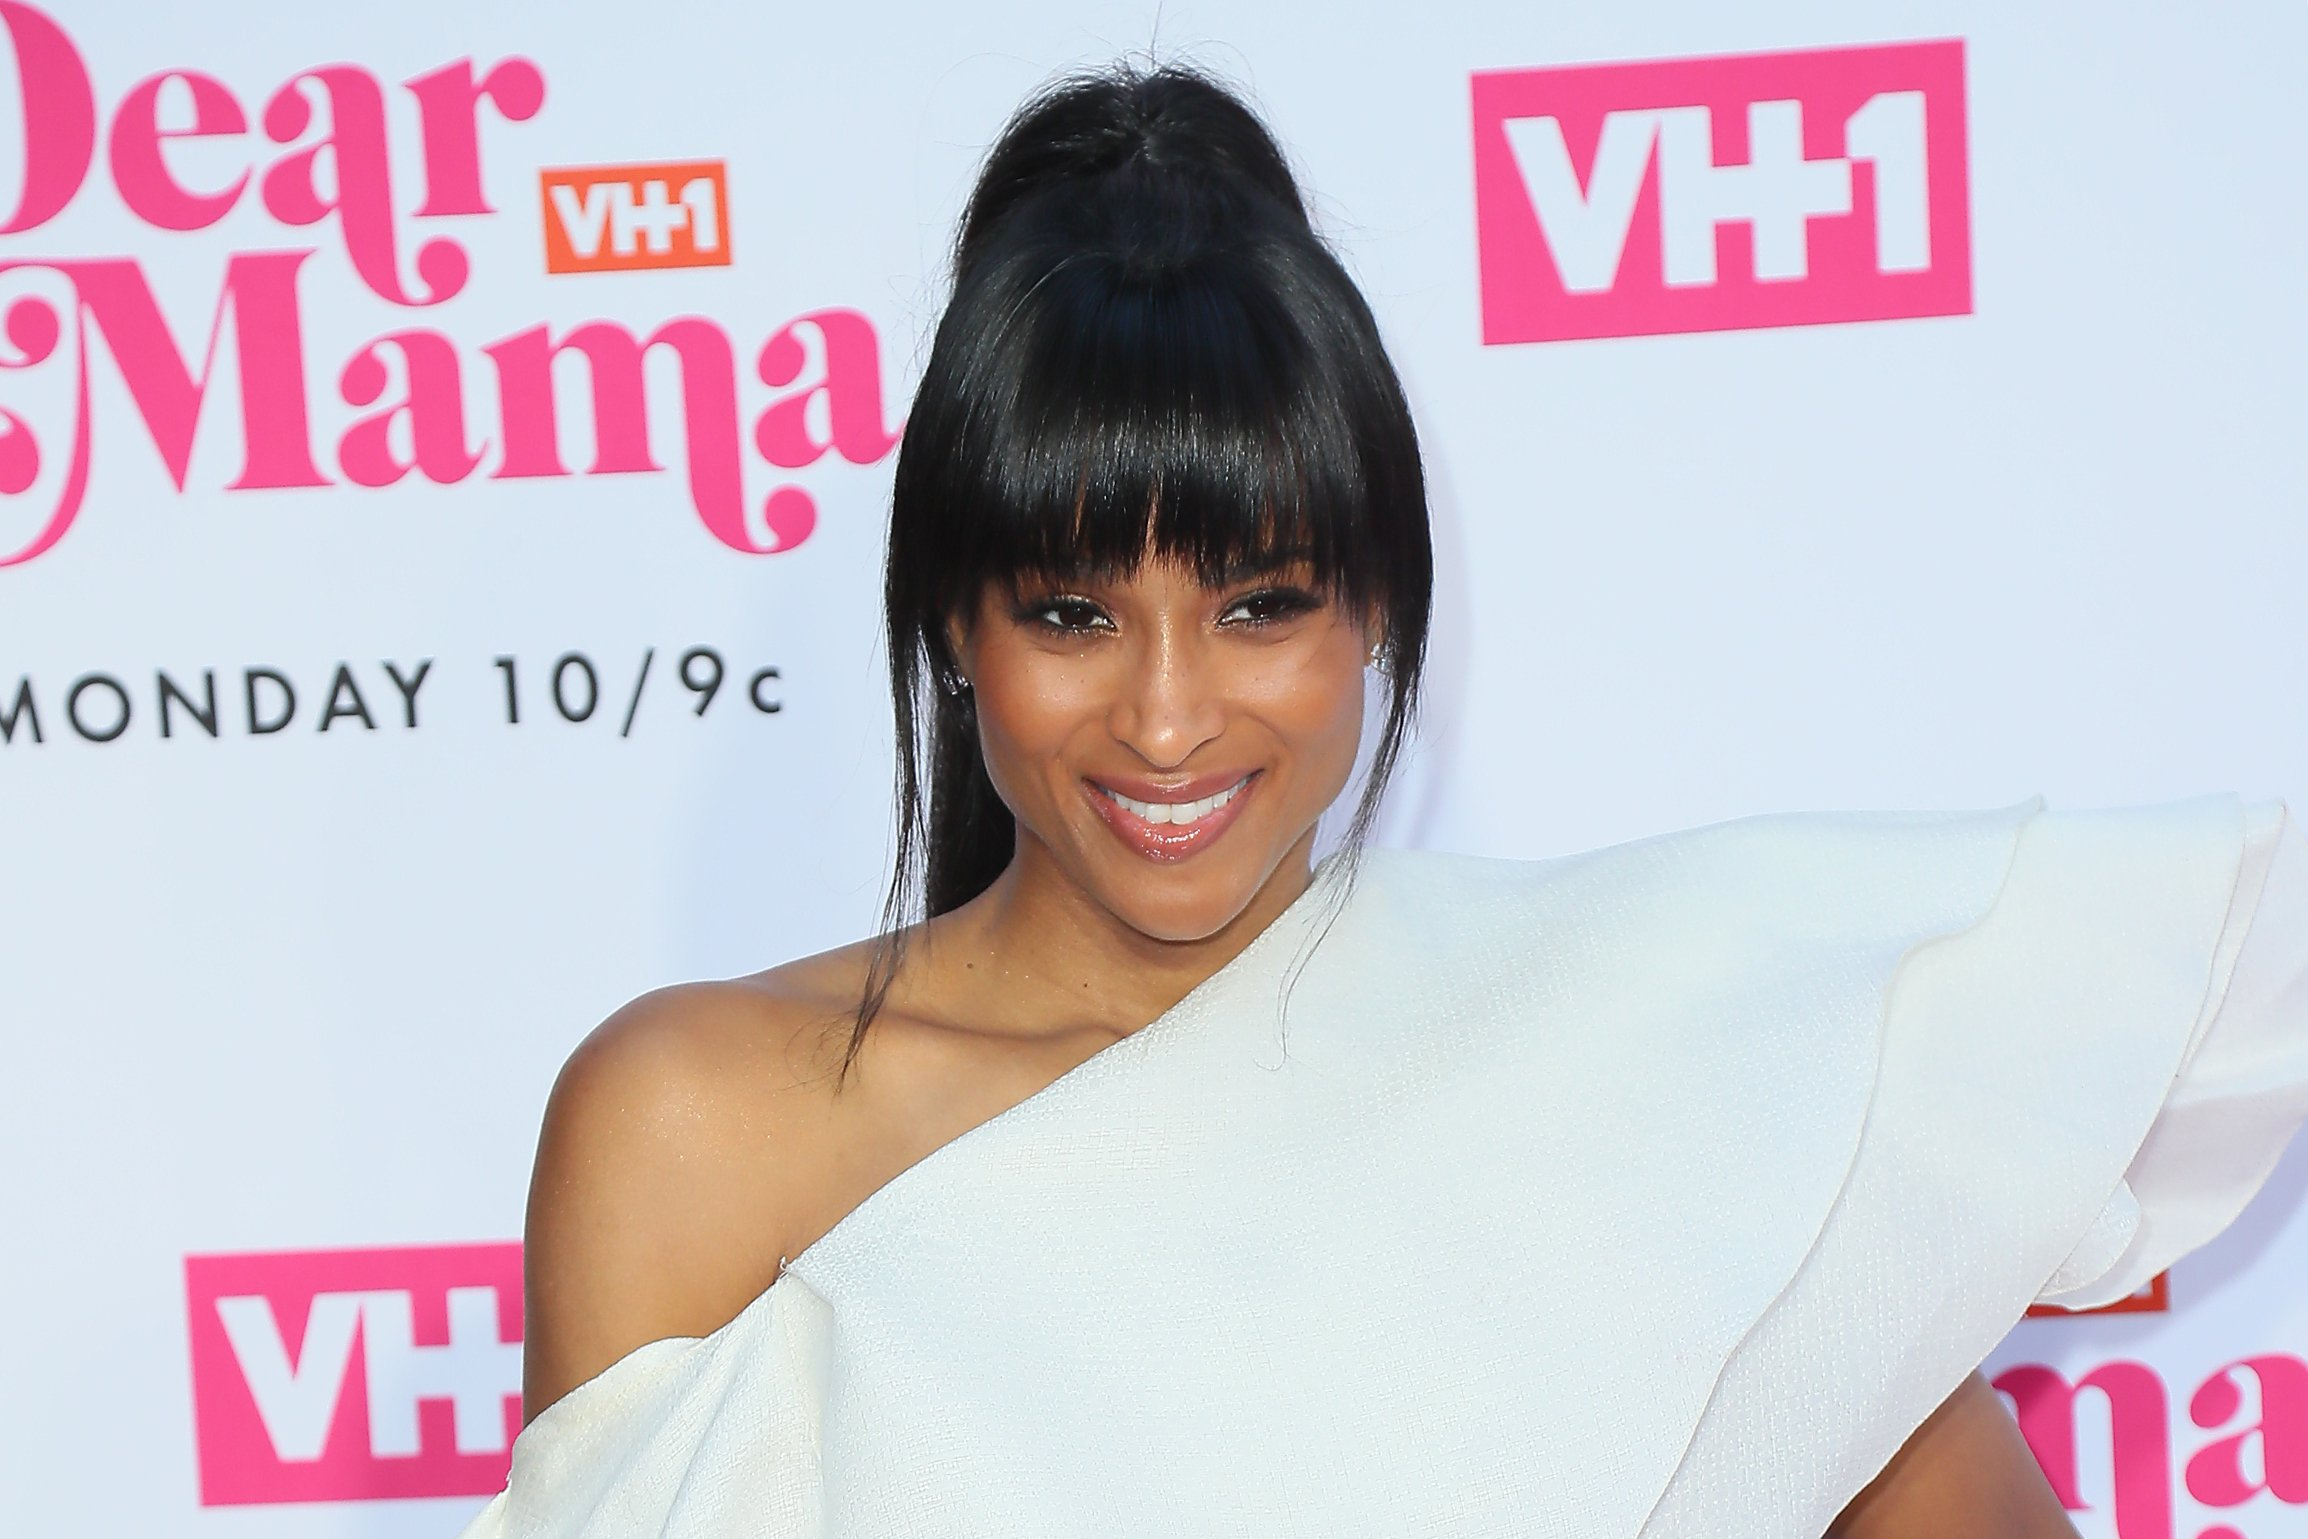 """Ciara at VH1's """"Dear Mama: A Love Letter To Mom"""" on May 02, 2019 in California 